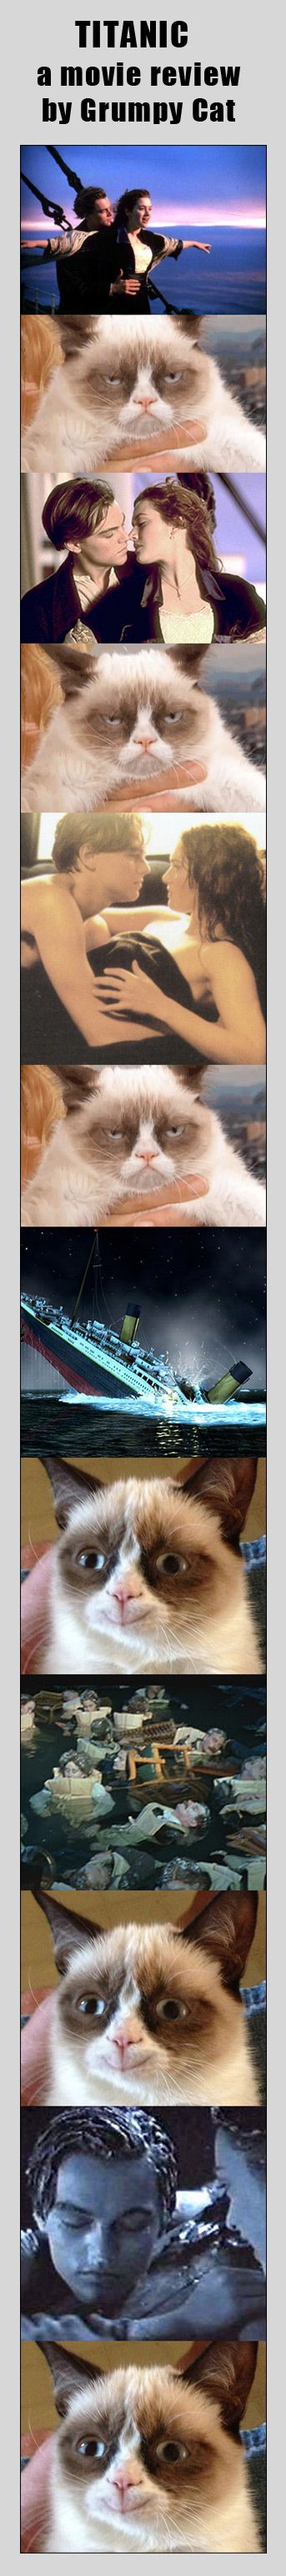 "Tard the Grumpy Cat reviews the Titanic movie (Please check out my ""Tard the Grumpy Cat"" board for more funny animal photos/ Tard the Grumpy Cat memes) #Tard #GrumpyCat #Funny"